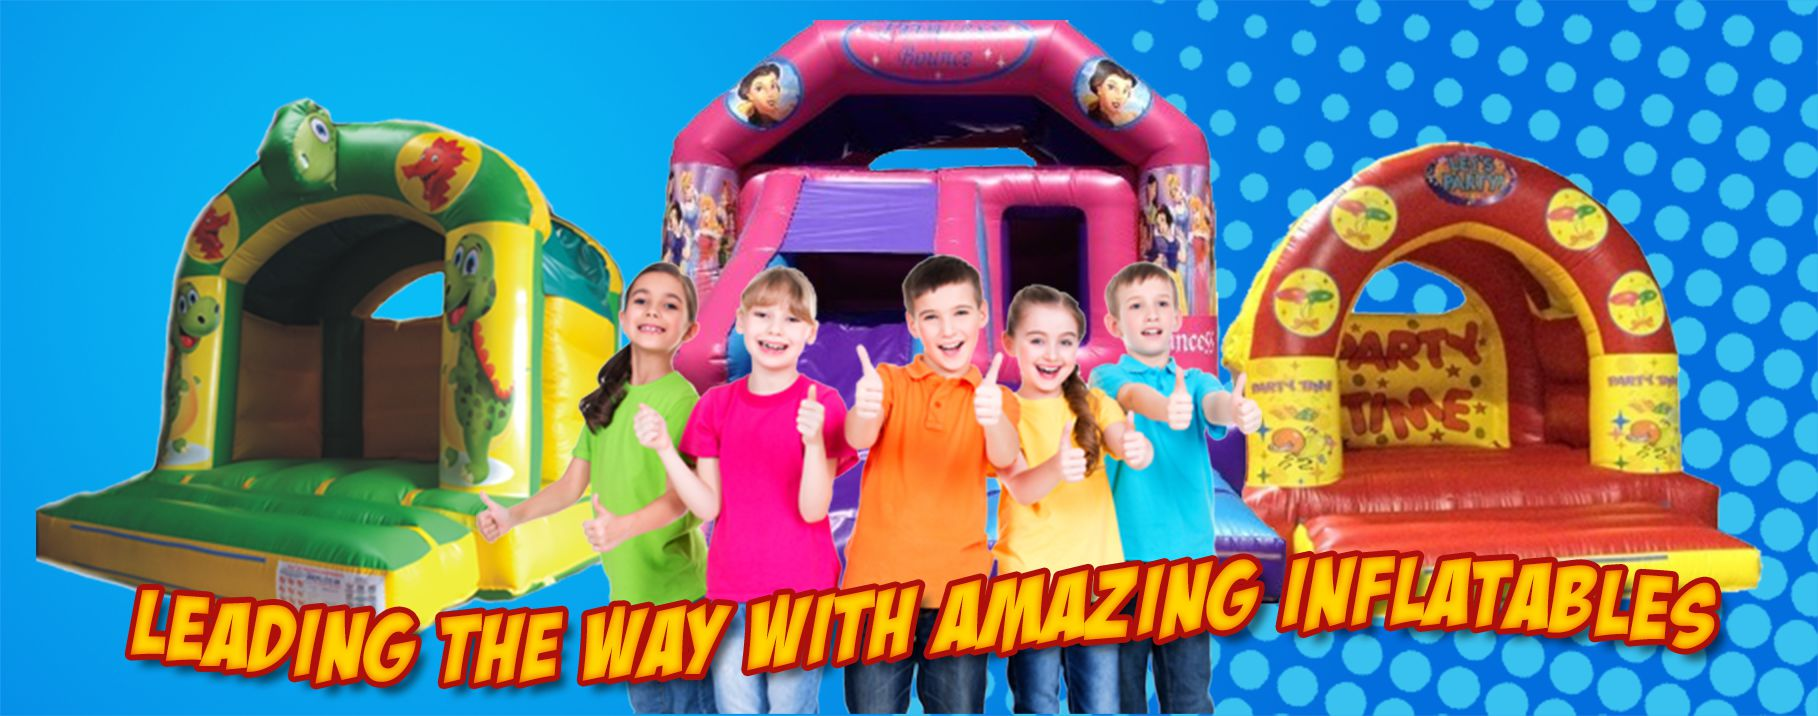 Fun 4 Kidz - Book Today on 01296 586 800